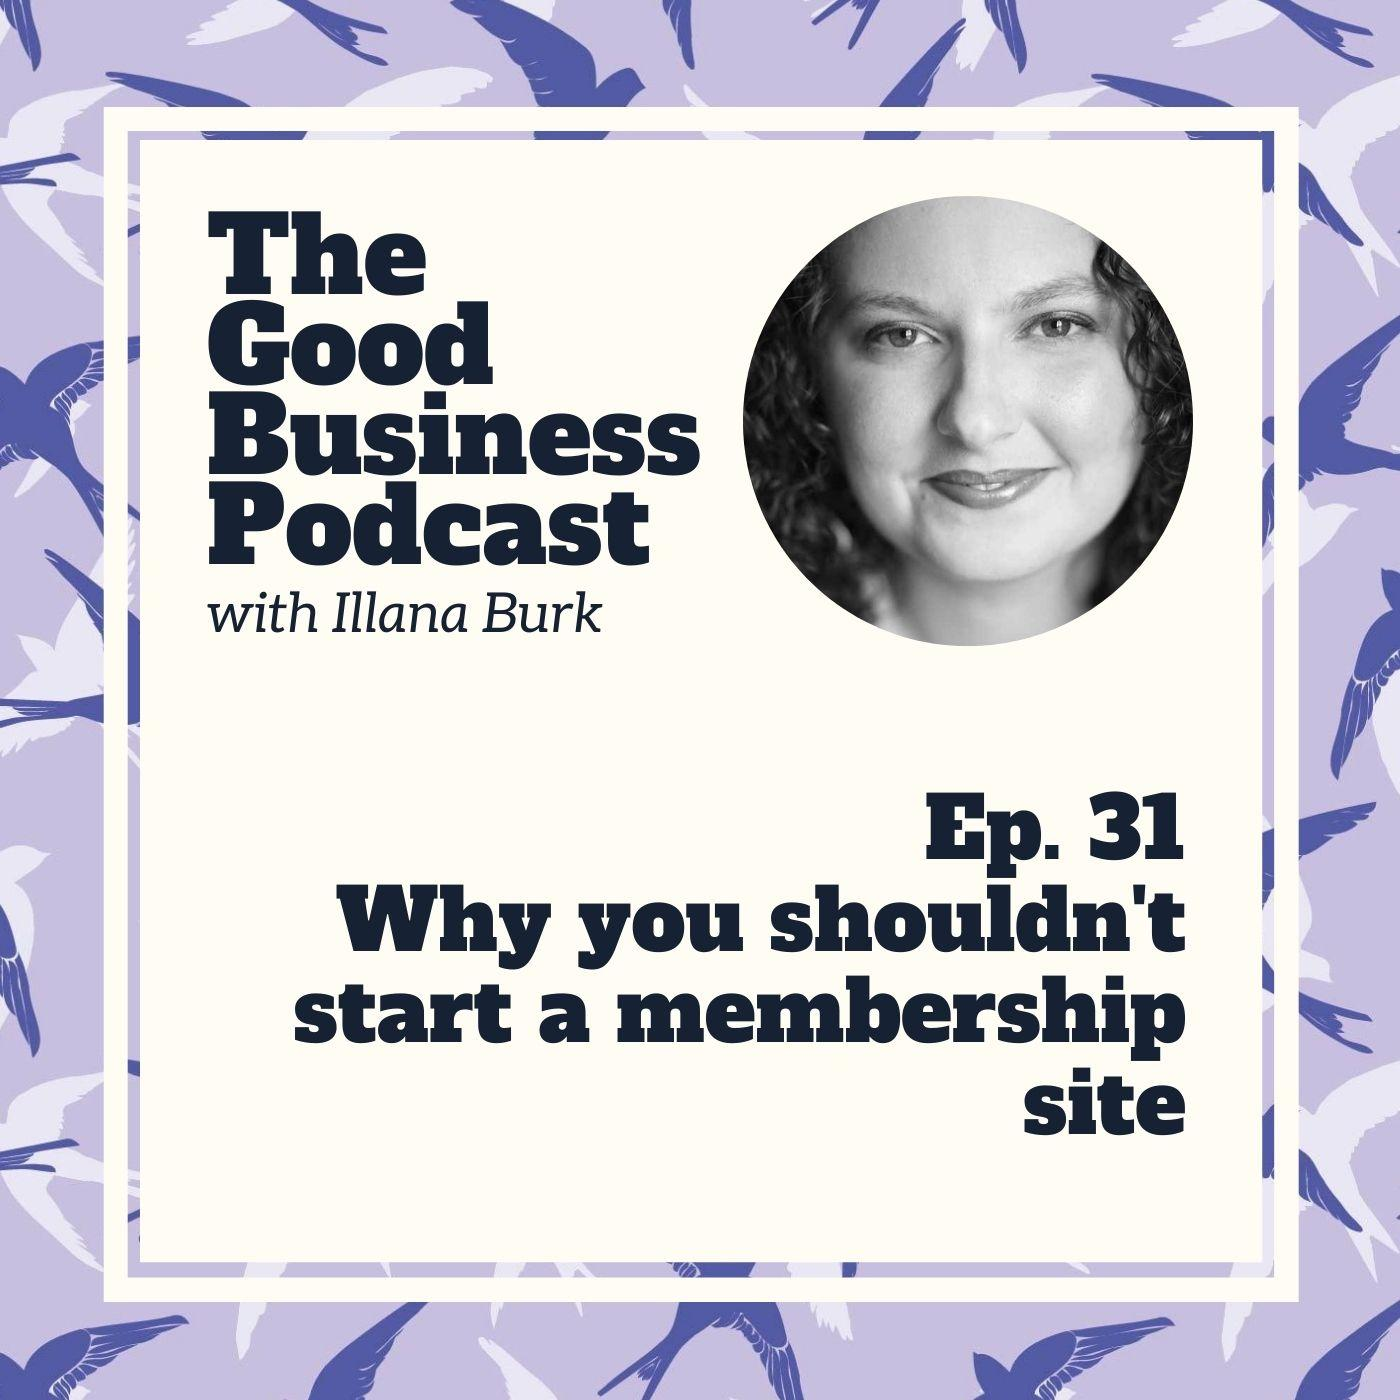 Why you shouldn't start a membership site | GB31